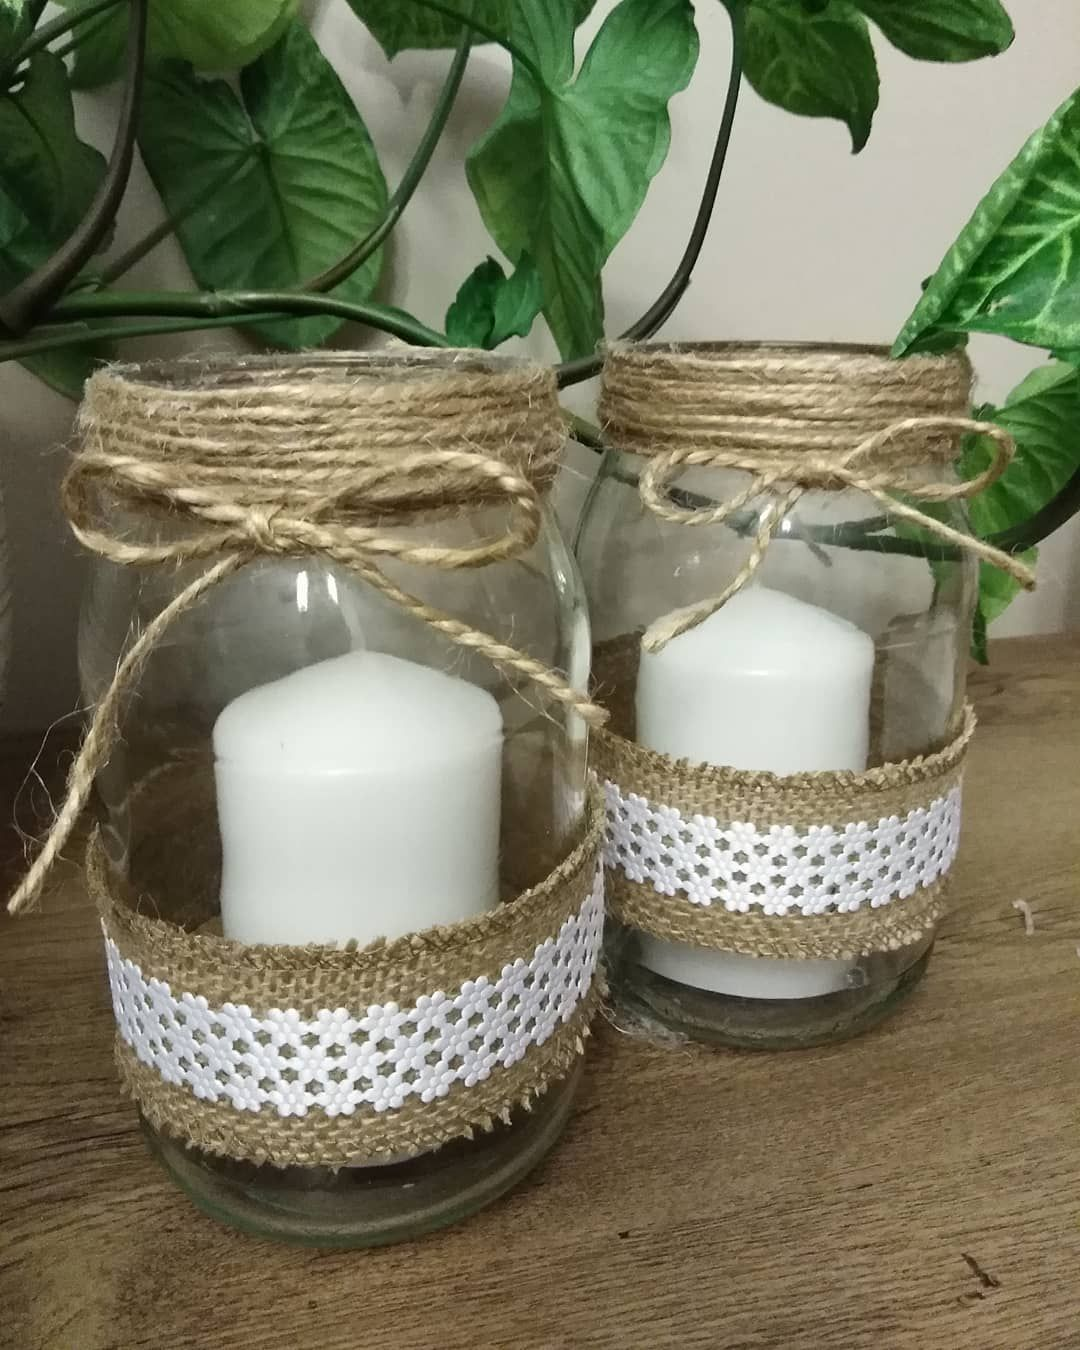 New The 10 Best Home Decor With Pictures Cudowne Swieczniki Wspaniale Udekoruja Kazde Wnetrze Oraz Swietnie Sprawdza Sie Jako O Diy Decor Candle Holders